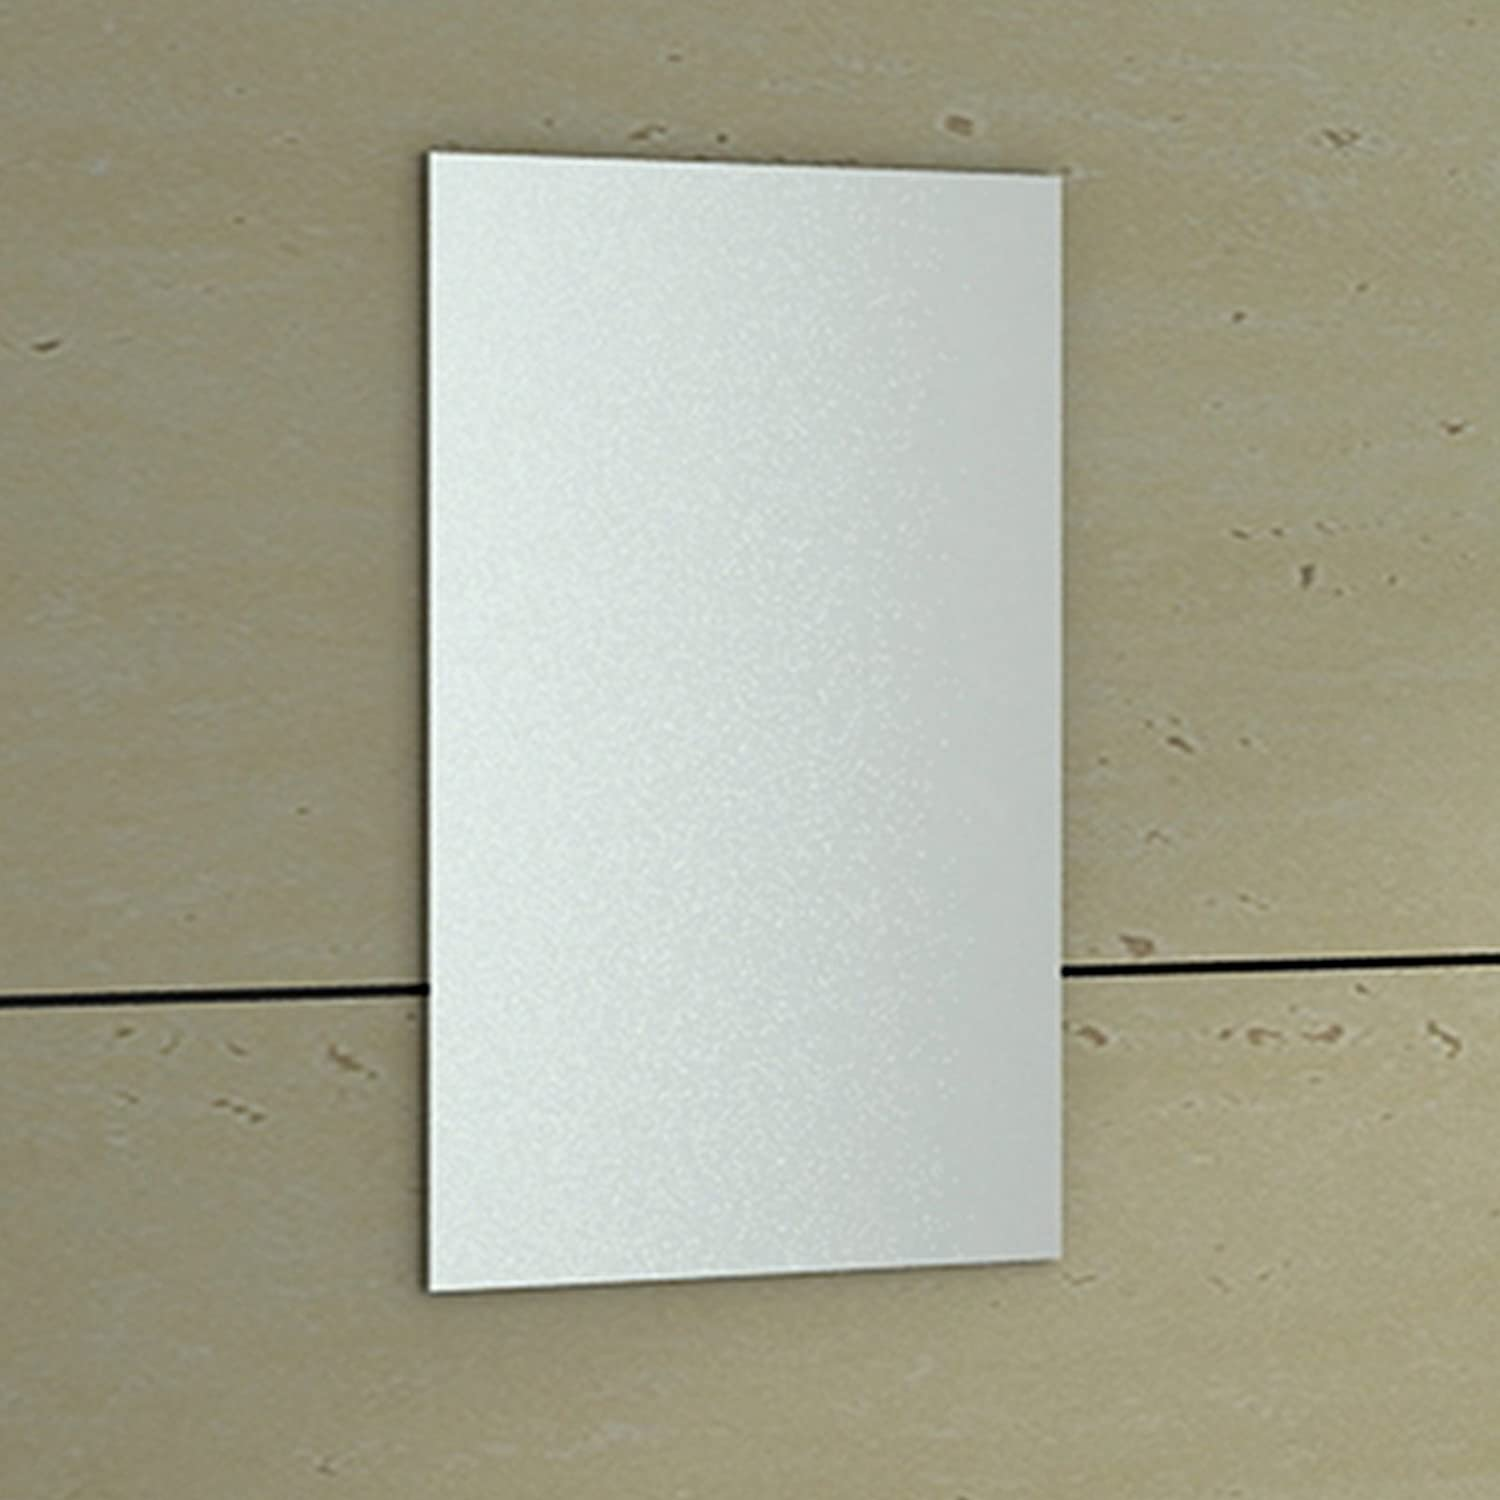 enki 400 x 600 mm rectangular bathroom wall mounted glass